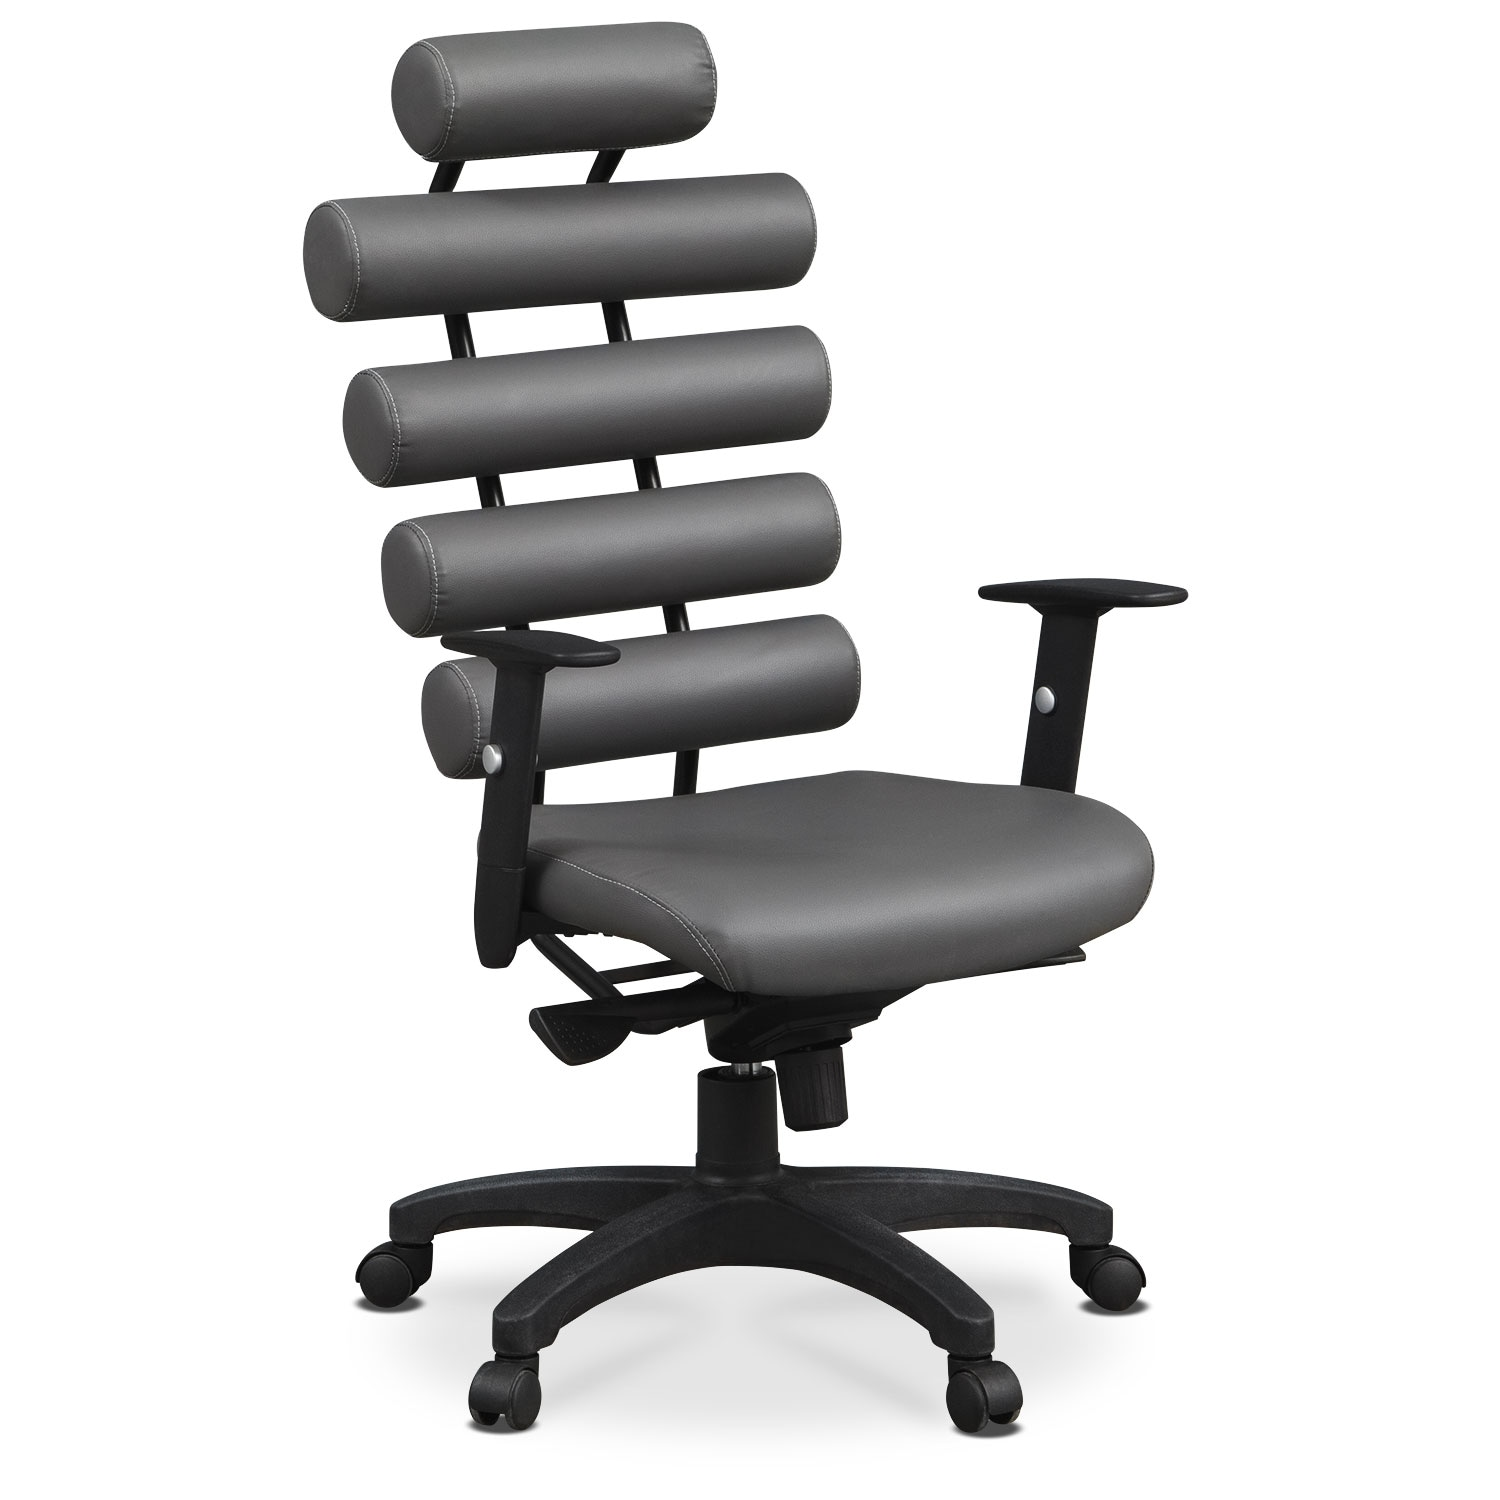 Norton Office Arm Chair - Gray